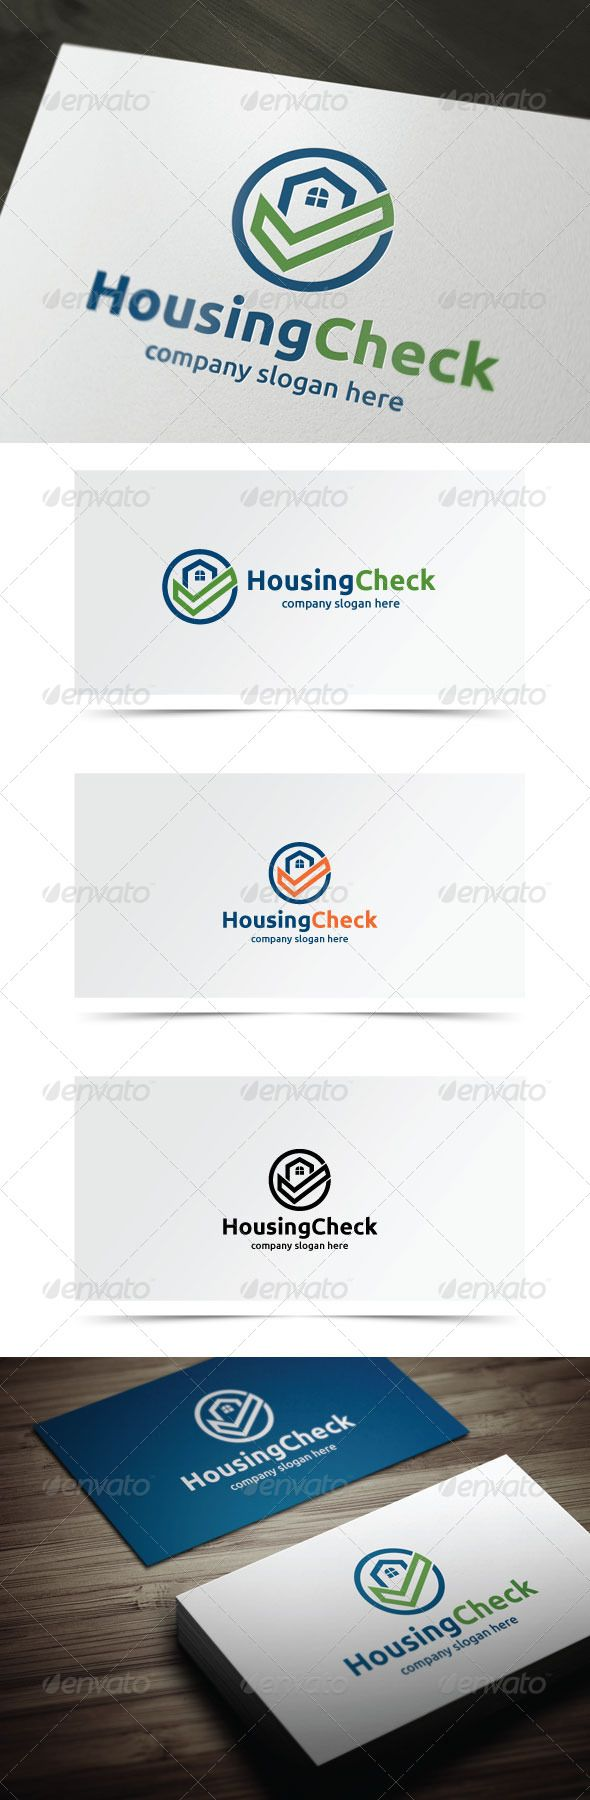 legal letters format%0A Housing Check